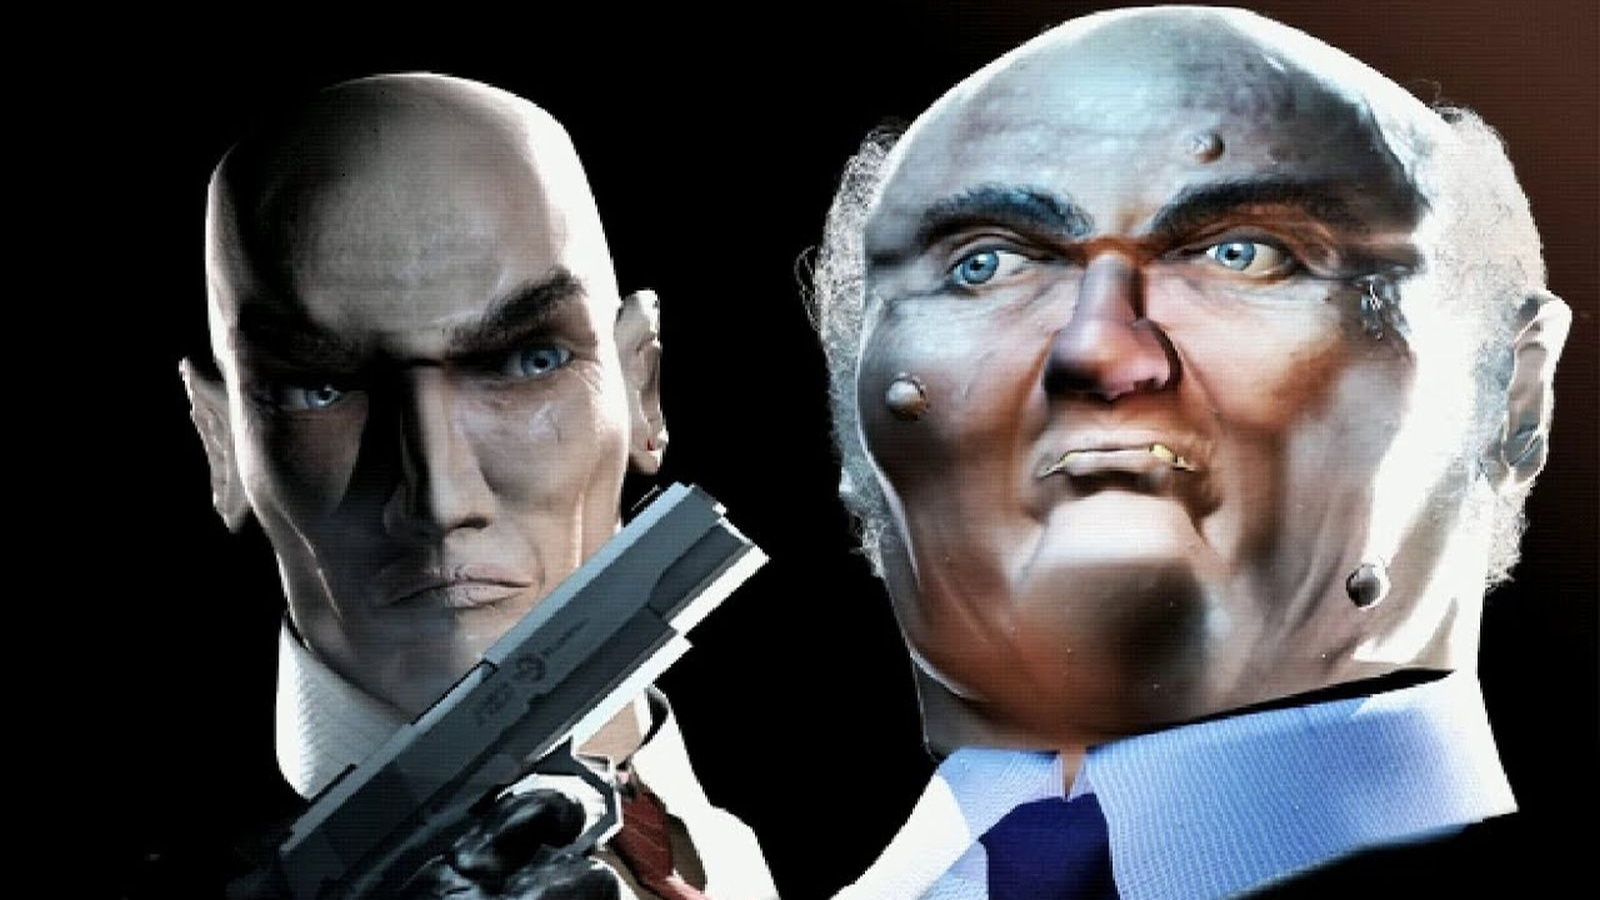 A loading screen from Hitman: Codename 47. It shows Agent 47 holding a gun to a poorly rendered older gentleman